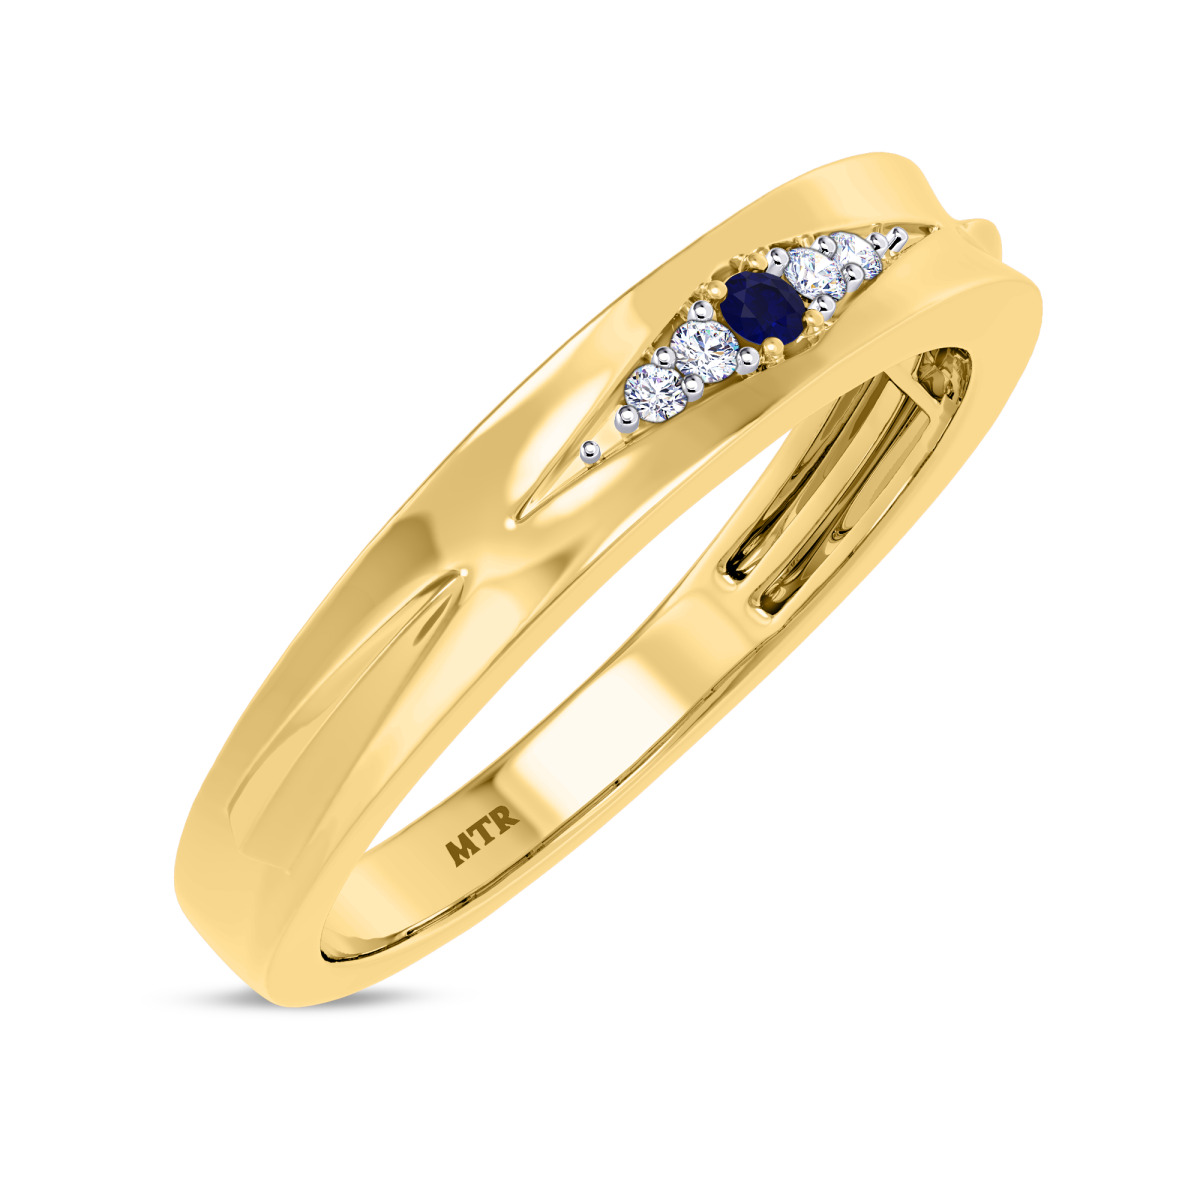 1/10 CT. T.W. Sapphire Mens Wedding Band 10K Yellow Gold